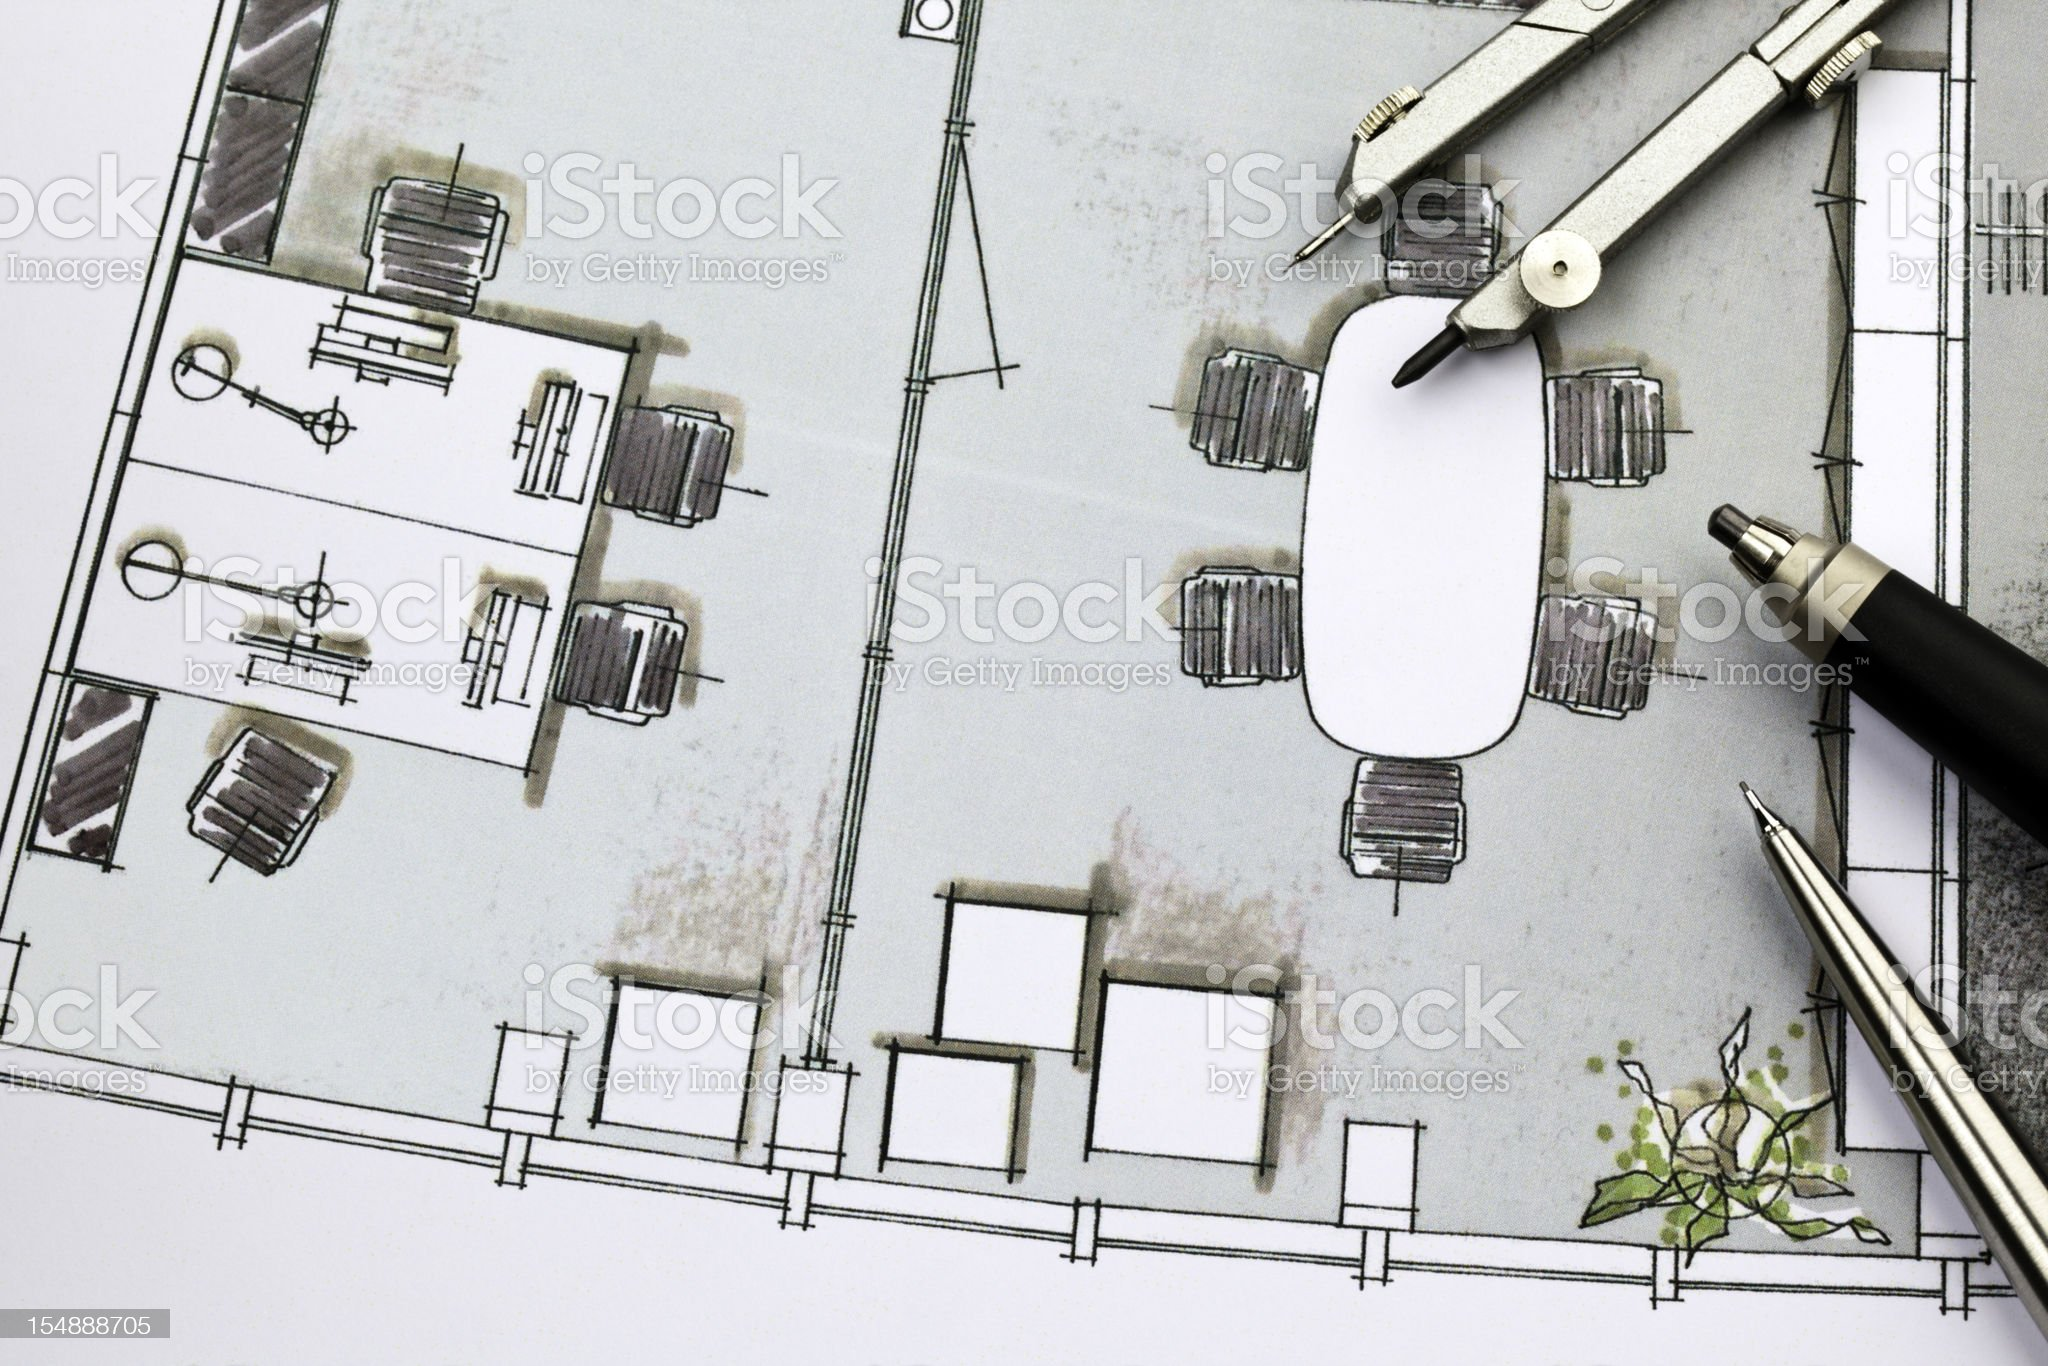 Layout of office interior design royalty-free stock photo